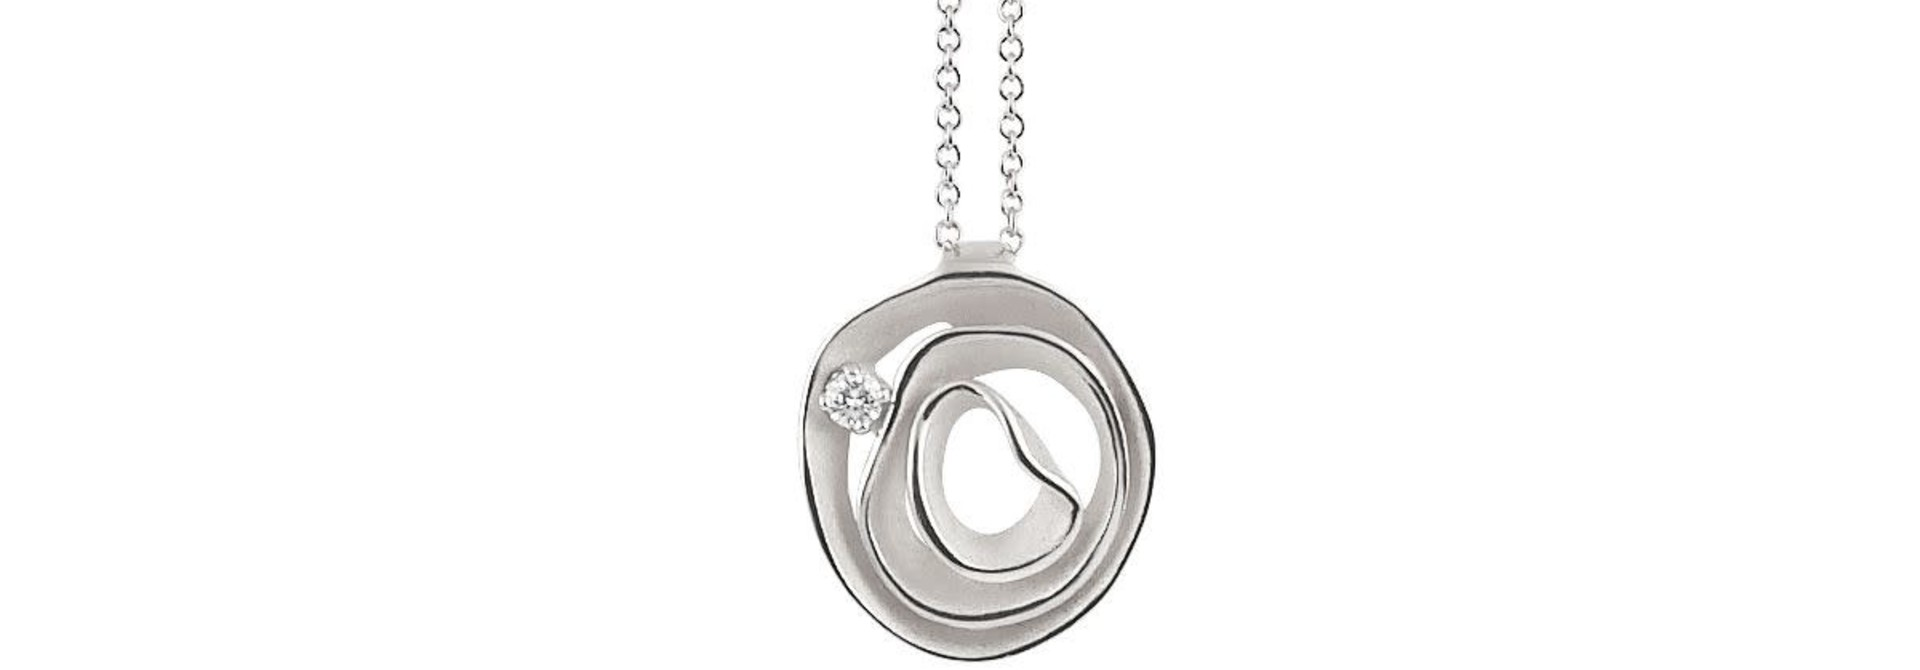 Dune Collection Pendant, 18Kt White Ice Gold With Diamonds